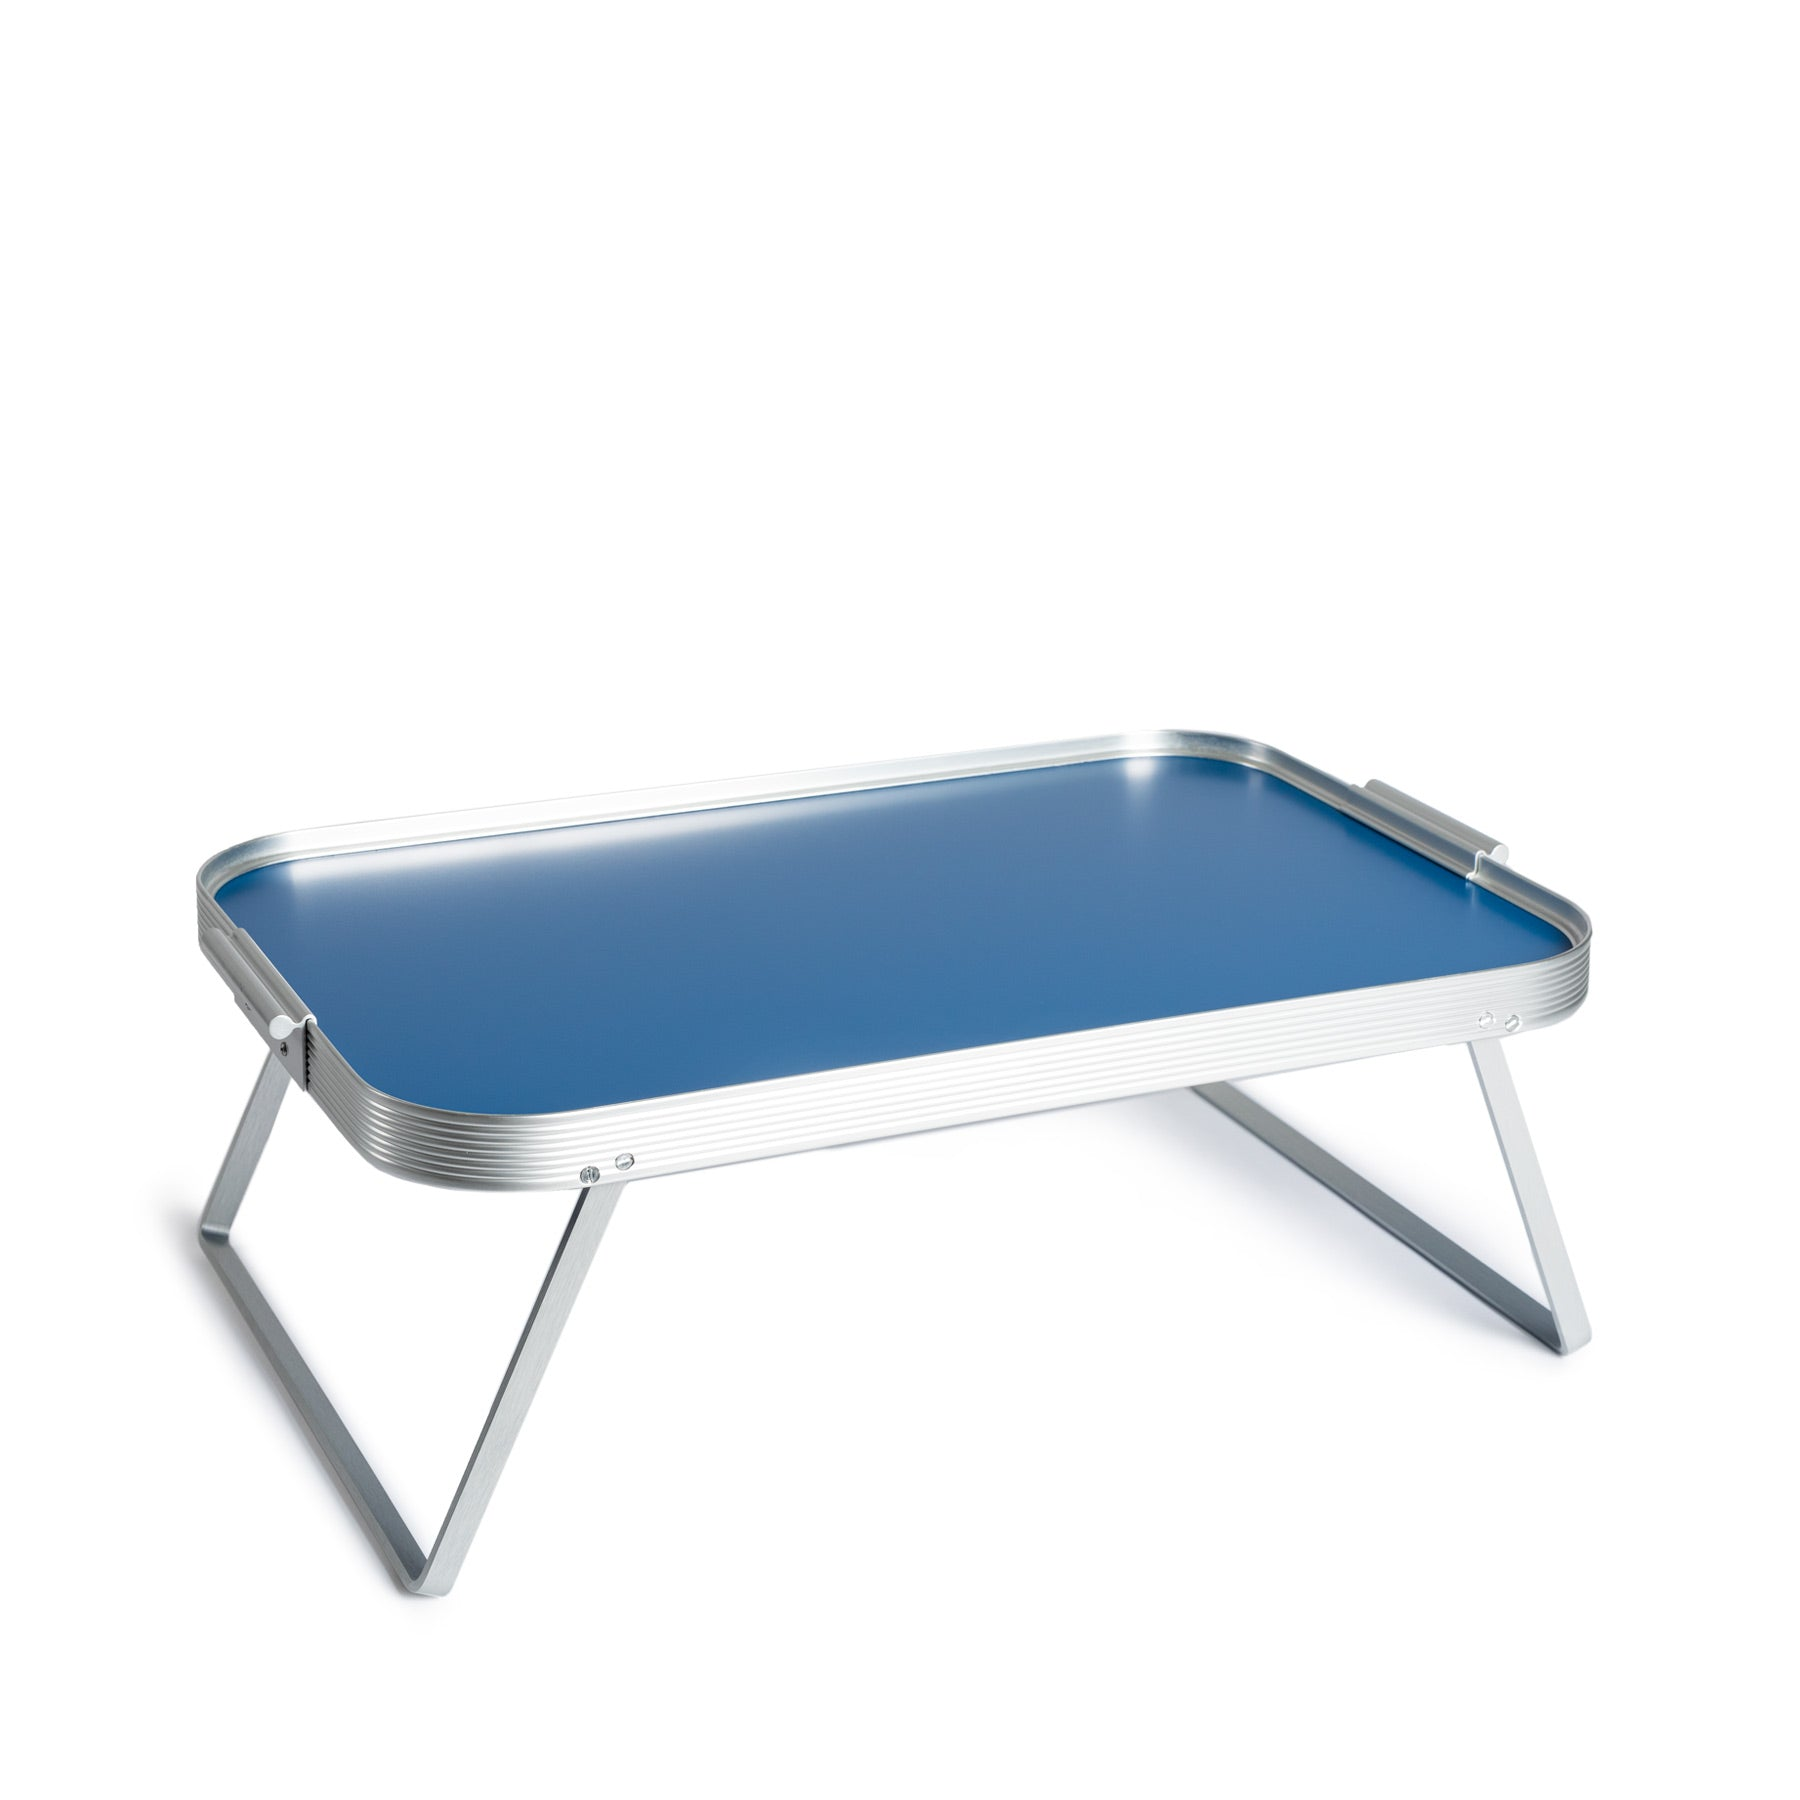 Lap tray in Cobalt Blue with Silver surrounds Zoom Image 1